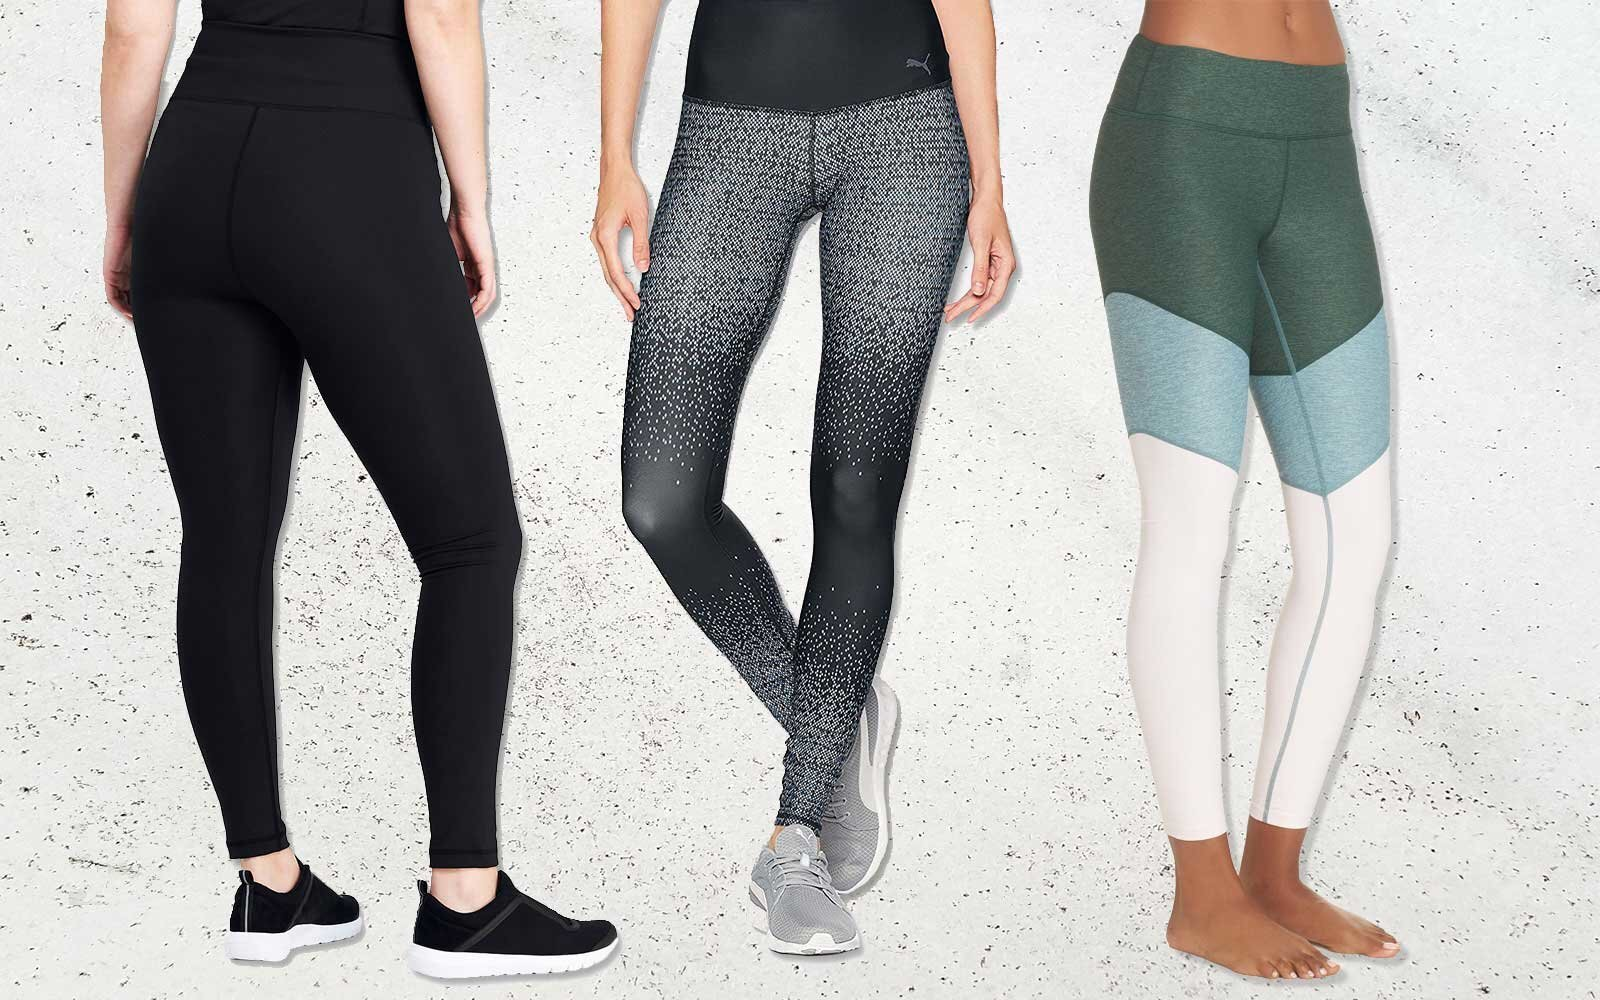 272188c673160 The Best Women's Compression Leggings for Travel | Travel + Leisure